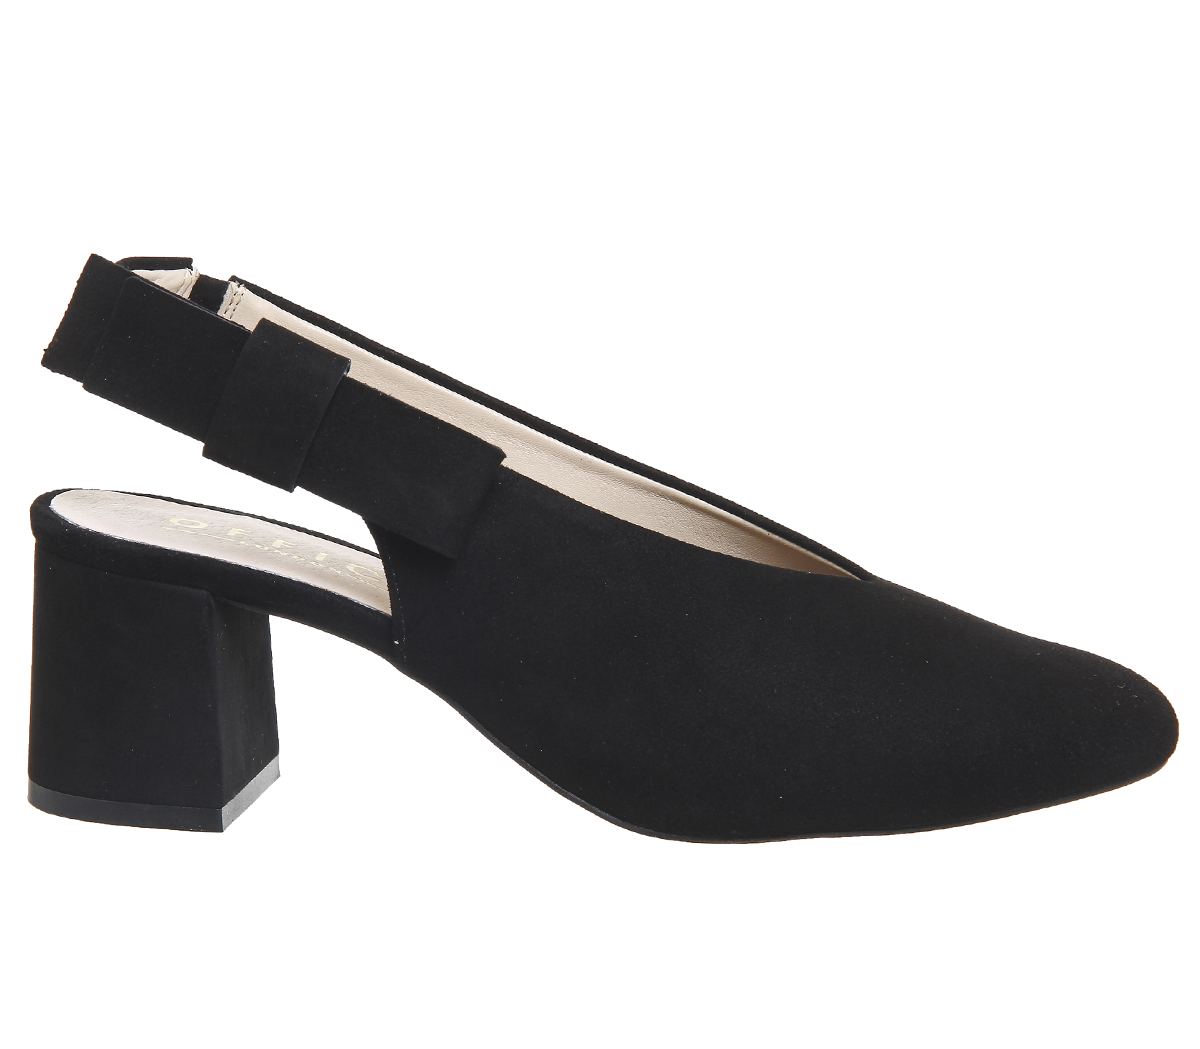 Womens-Office-Magical-Bow-Slingback-Heels-Black-Suede-Heels thumbnail 5